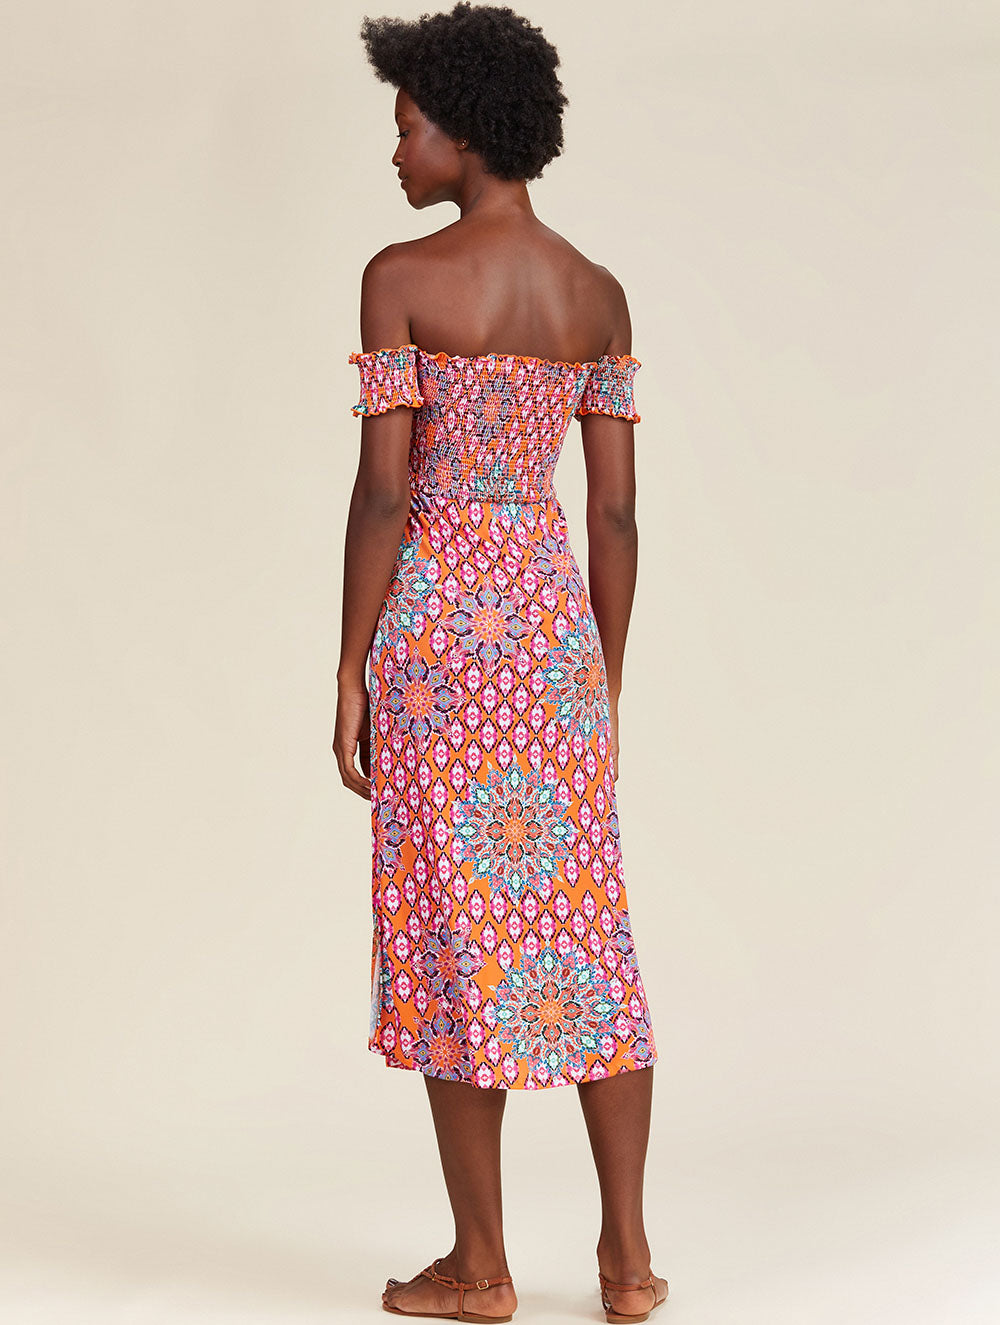 Ladakh Printed strapless dress with short